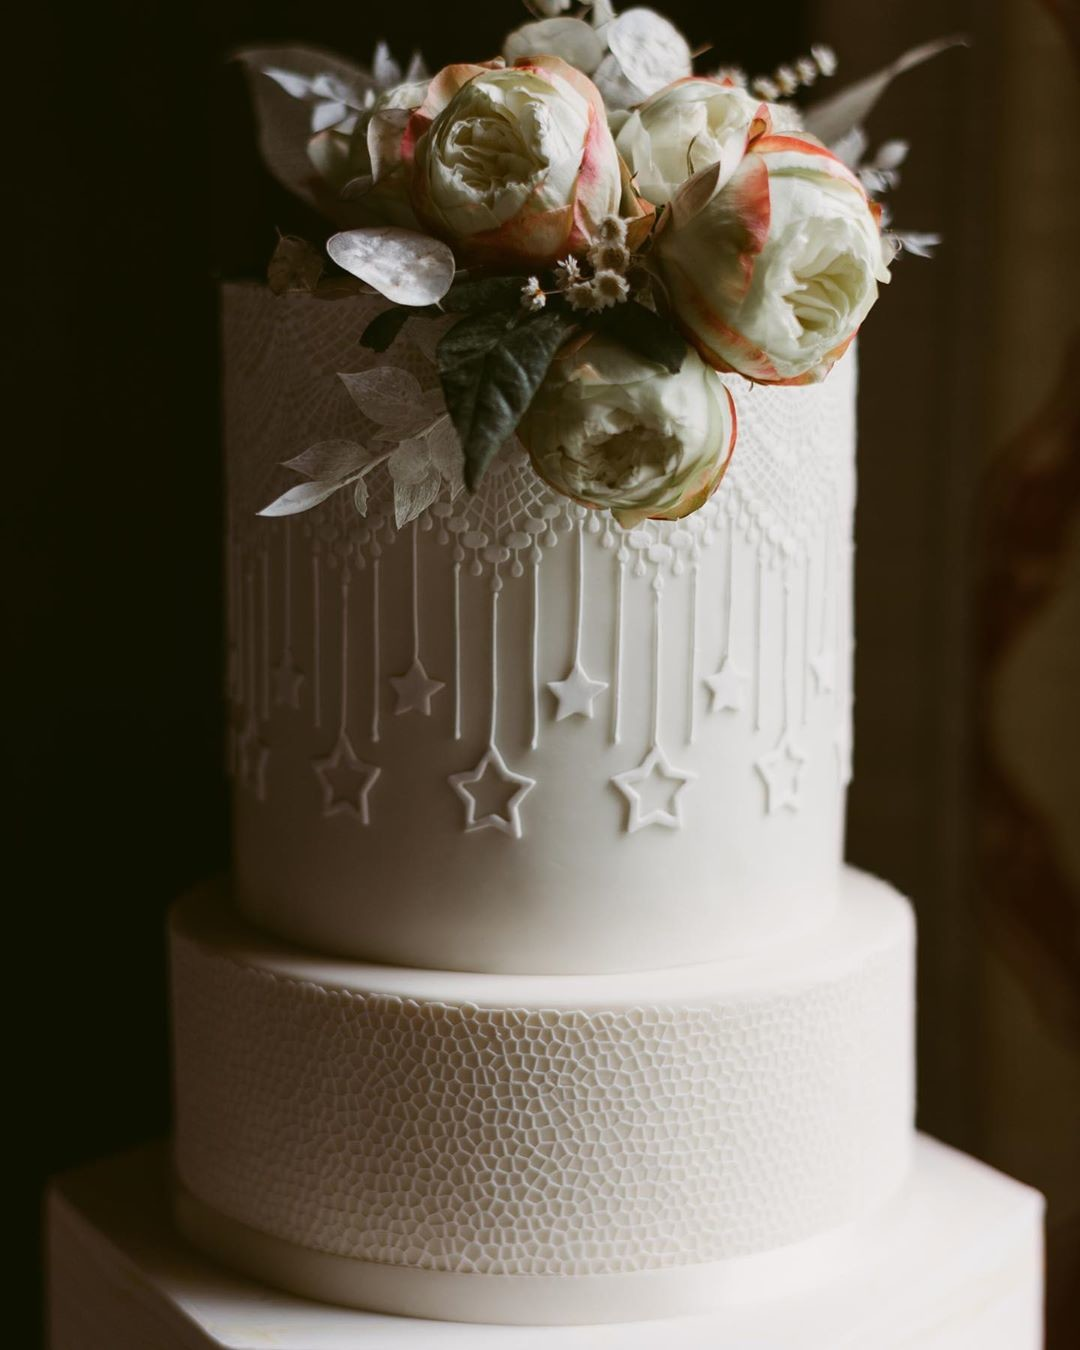 So many weddings this year are skipping on the wedding cake and doing something non-traditional instead. I'm a huge fan of a big